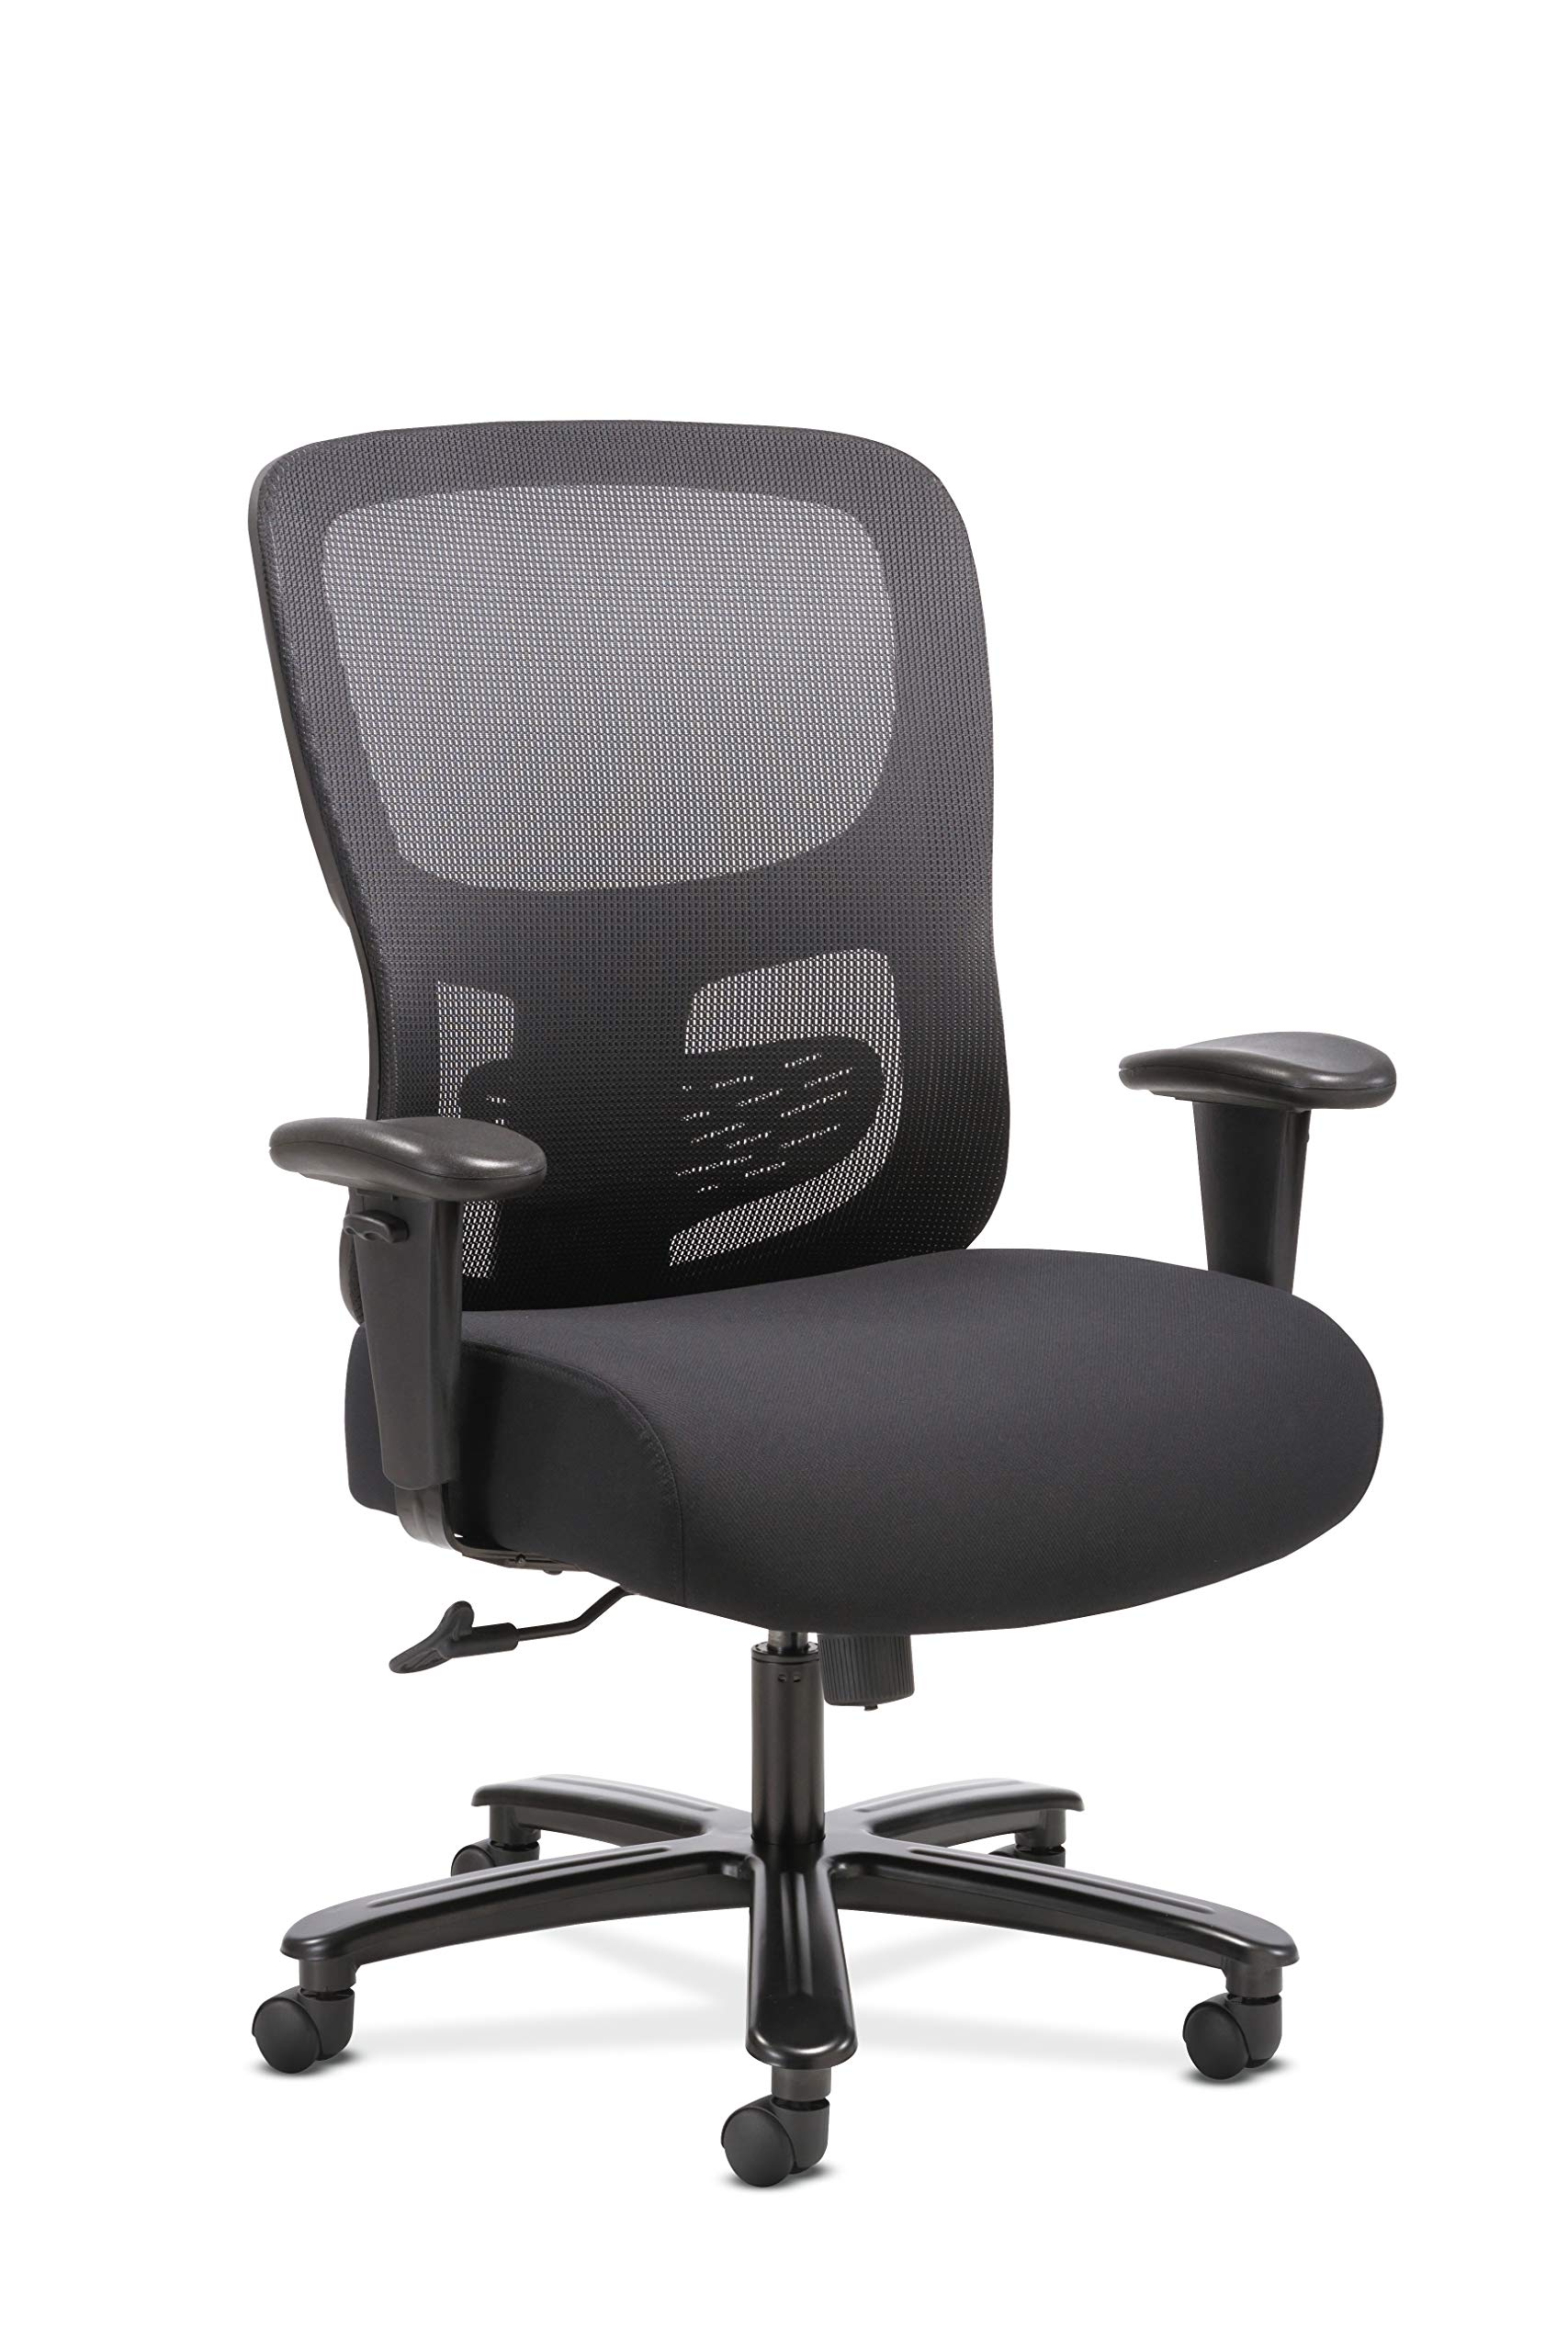 Sadie Big and Tall Office Computer Chair, Height Adjustable Arms with Adjustable Lumbar, Black (HVST141) by HON